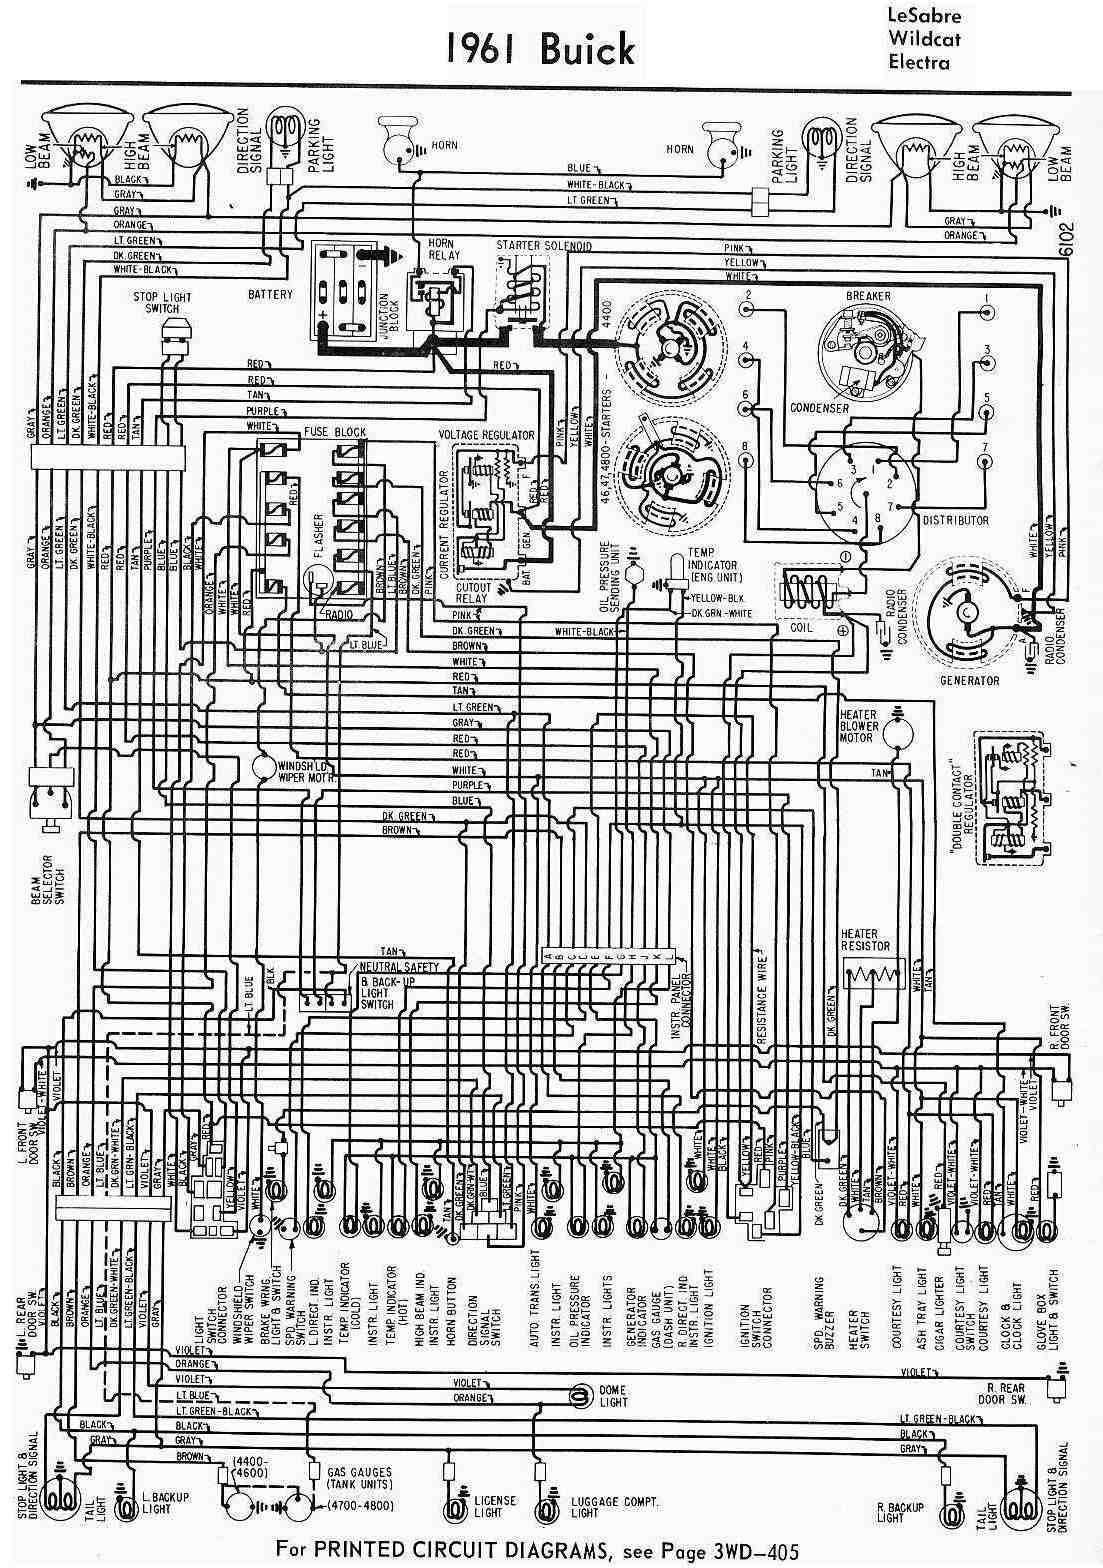 1992 chevy s10 fuse box diagram december 2011 all about wiring diagrams s10 fuse box diagram